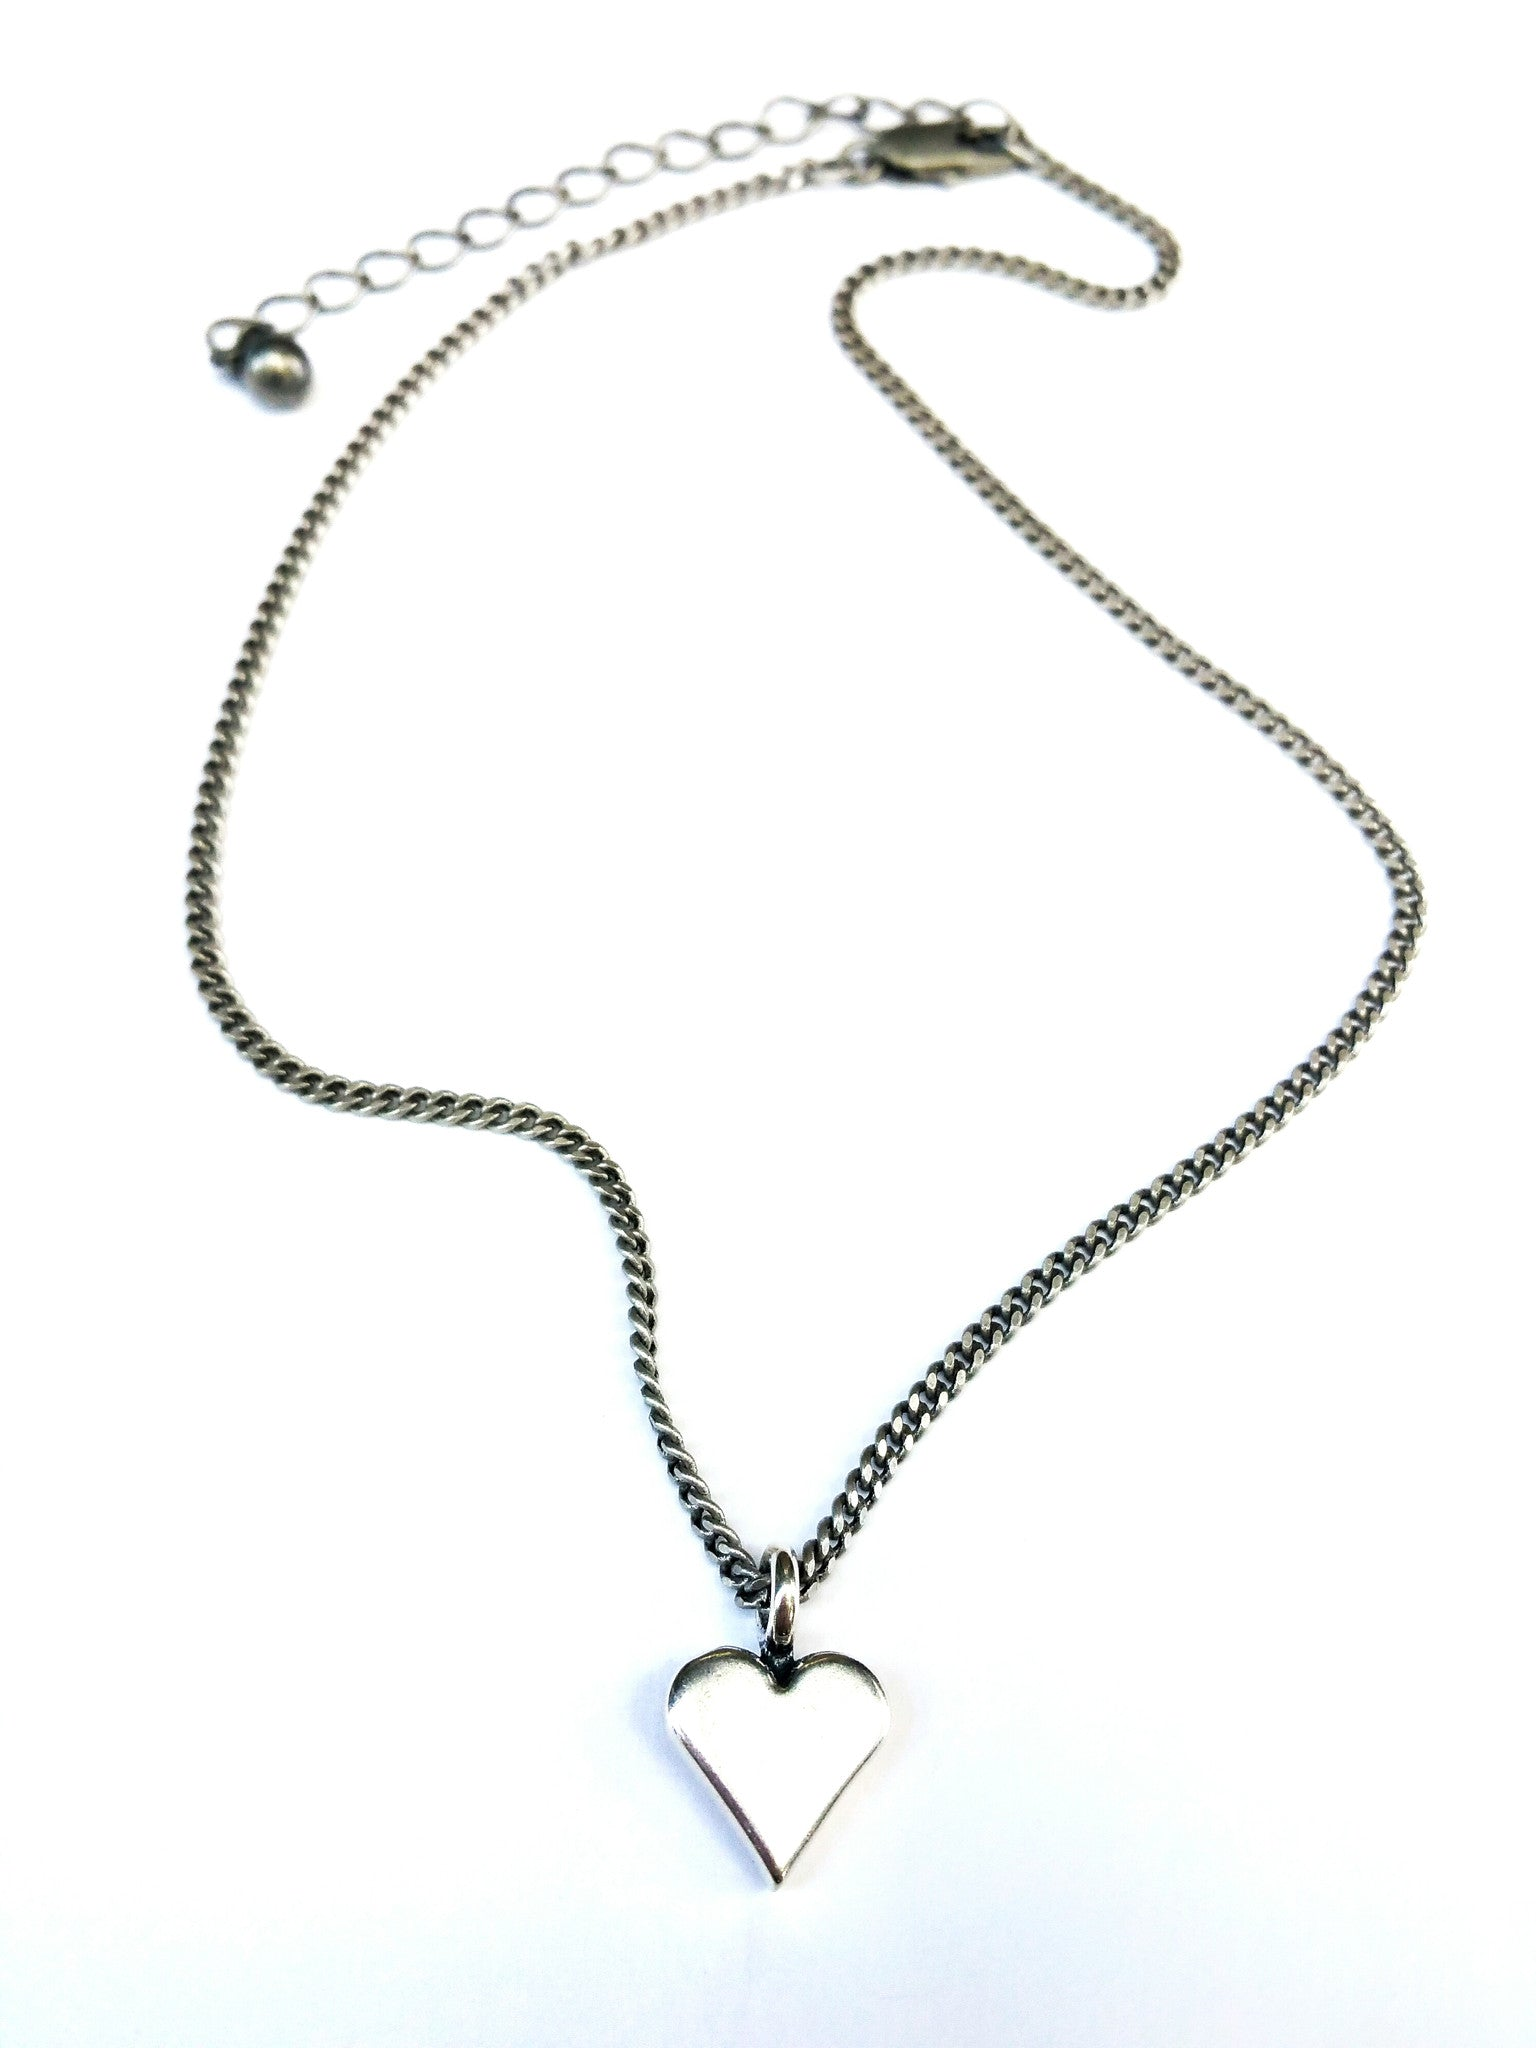 mini rose infinity rsp main buythomas johnlewis heart gold at thomas glam sabo soul pdp online john lewis necklace